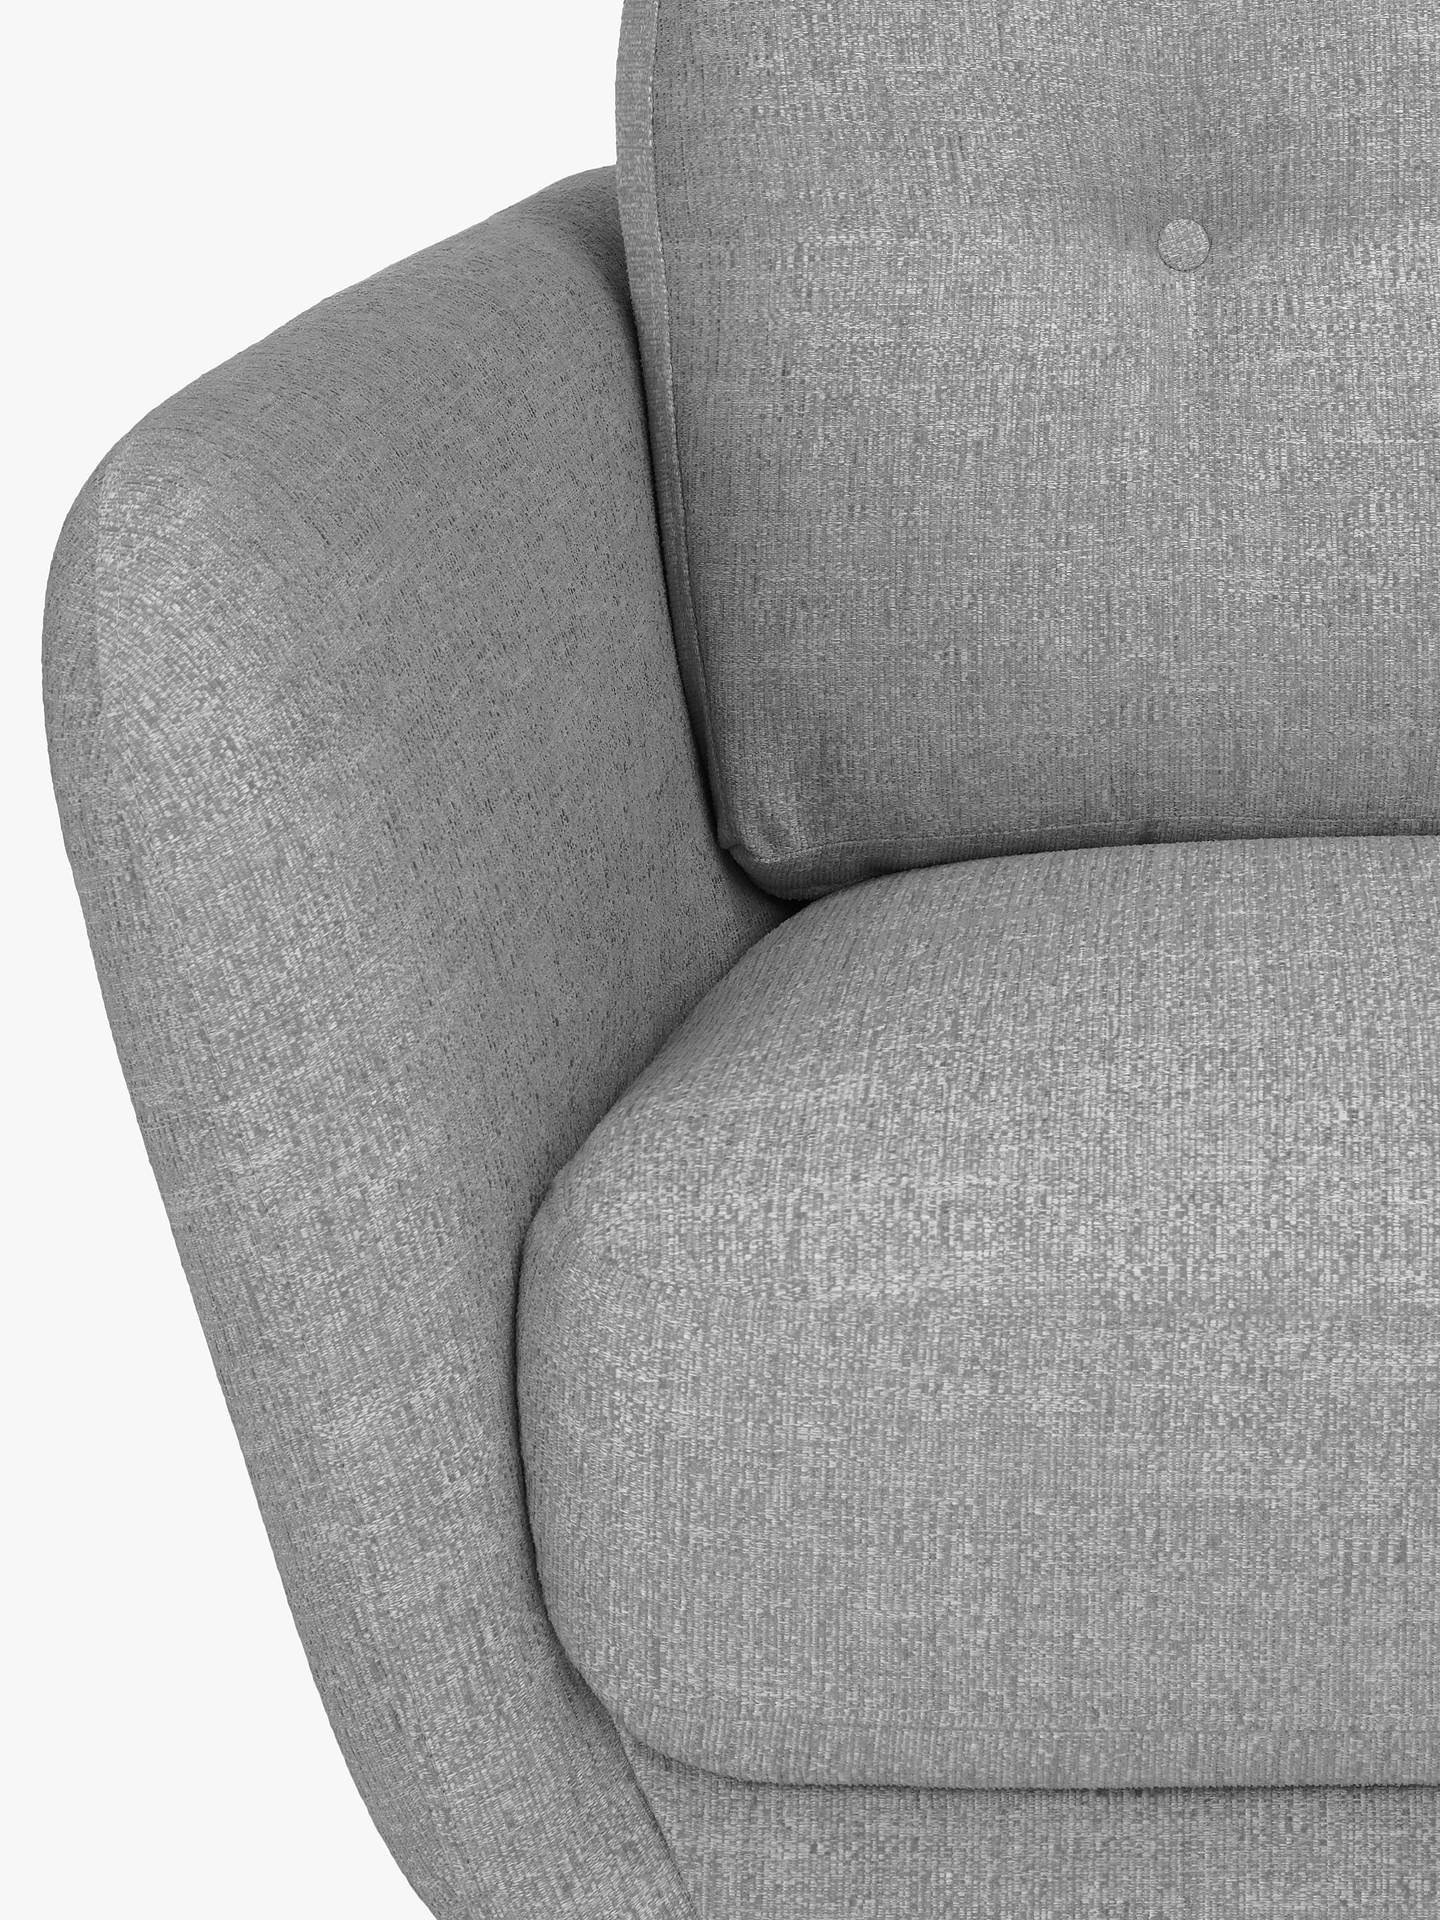 BuyJohn Lewis & Partners Arlo Large 3 Seater Sofa, Light Leg, Catrin Charcoal Online at johnlewis.com